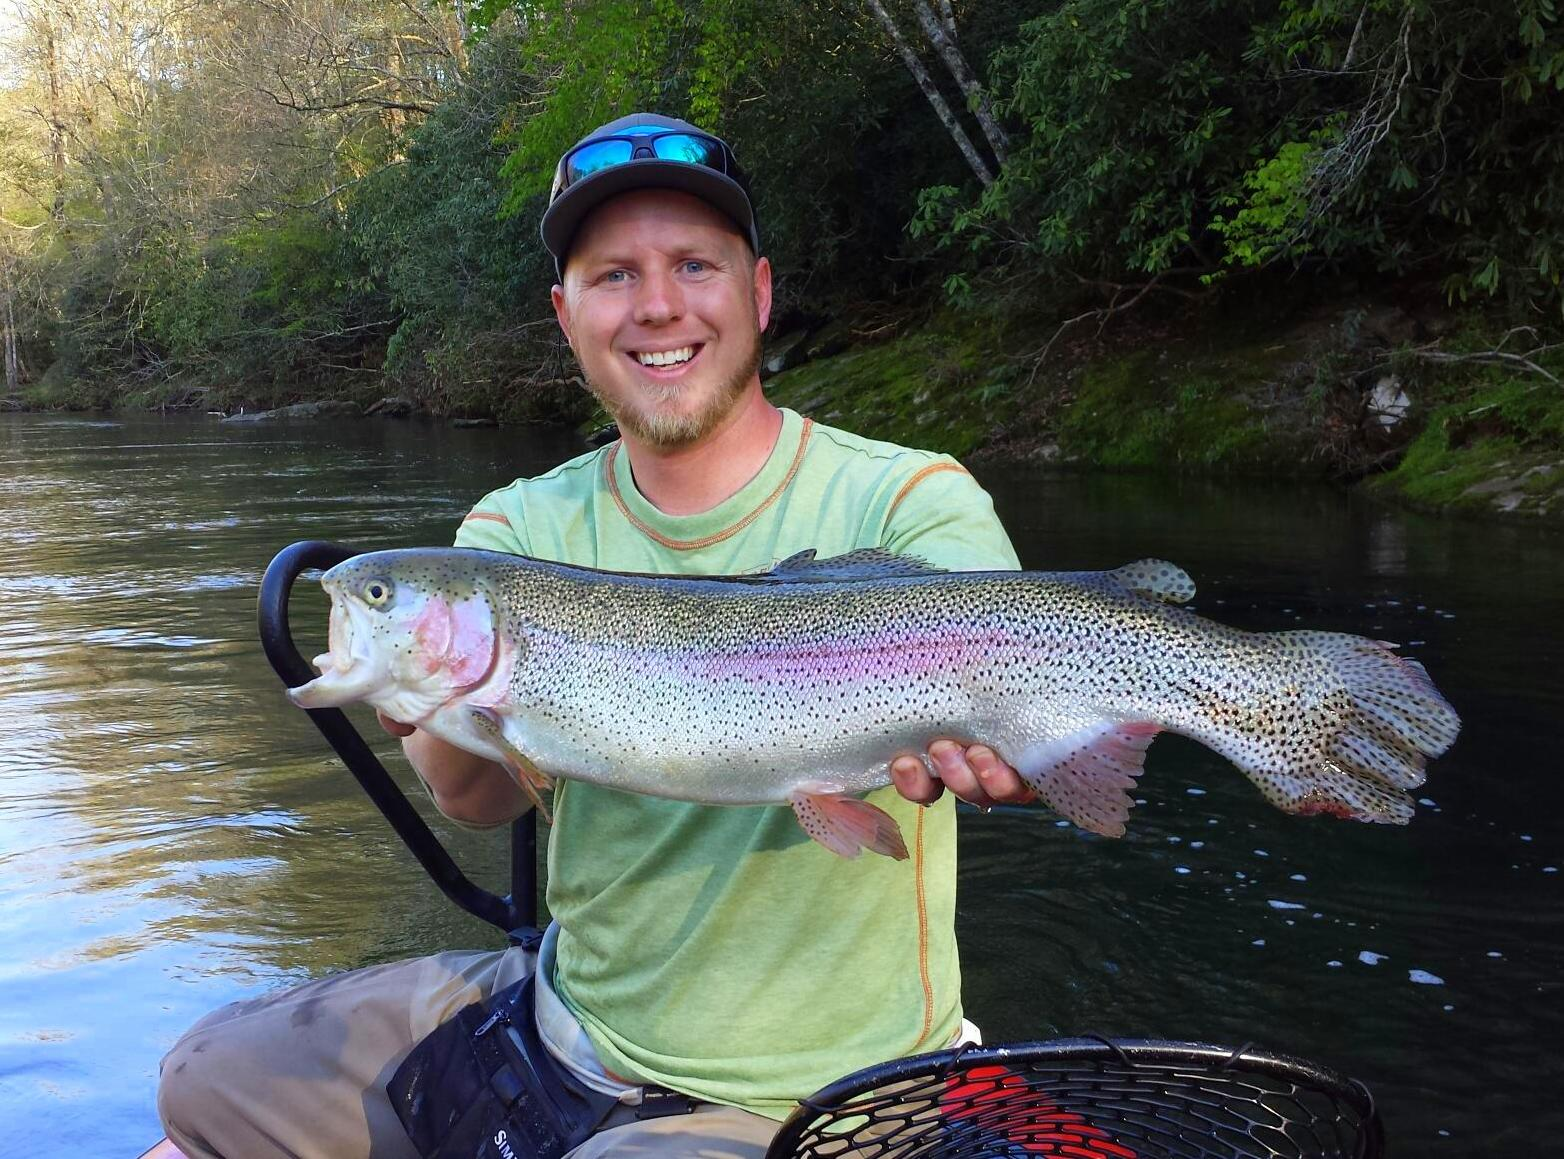 Fly fishing guides in the great smoky mountains of nc and tn for Best trout fishing in nc